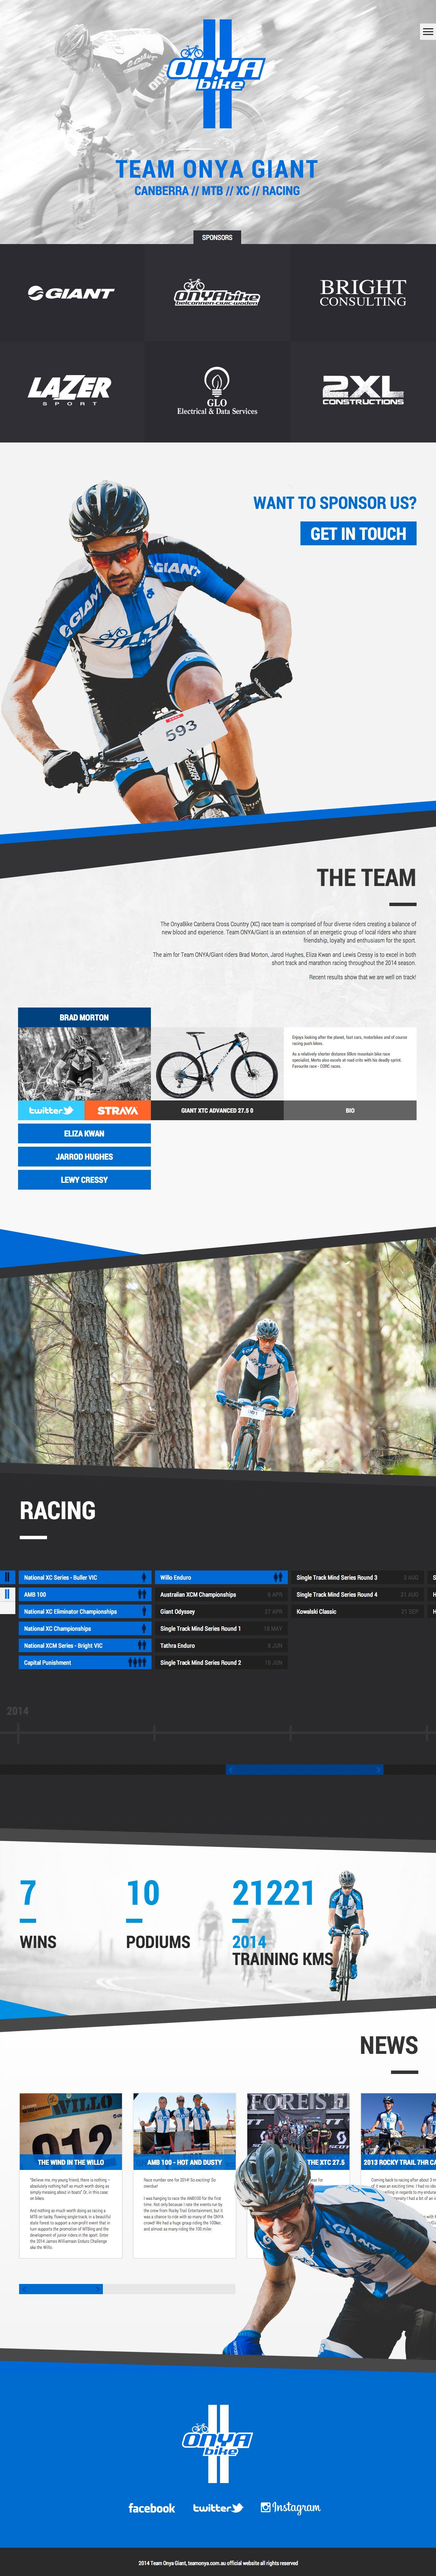 Team Onya Giant Website Screenshot